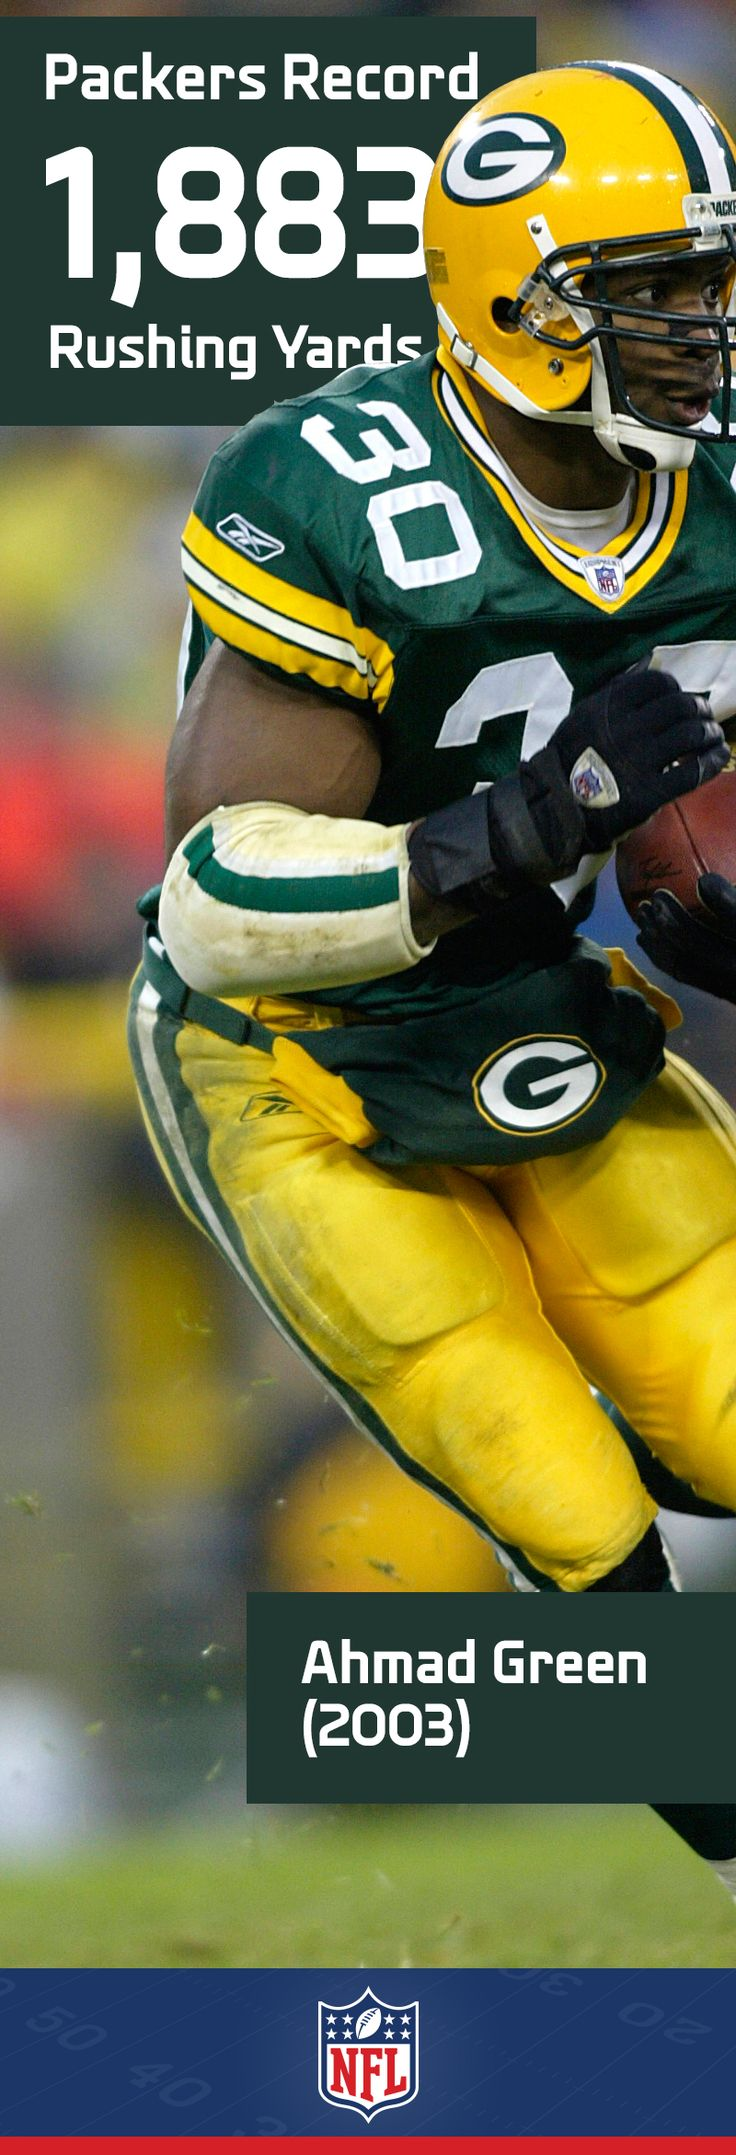 Ahman Green is a Packers great, and for good reason. His 1,883 yards on the ground set a team record in 2003. #NFLFanStyle #contest